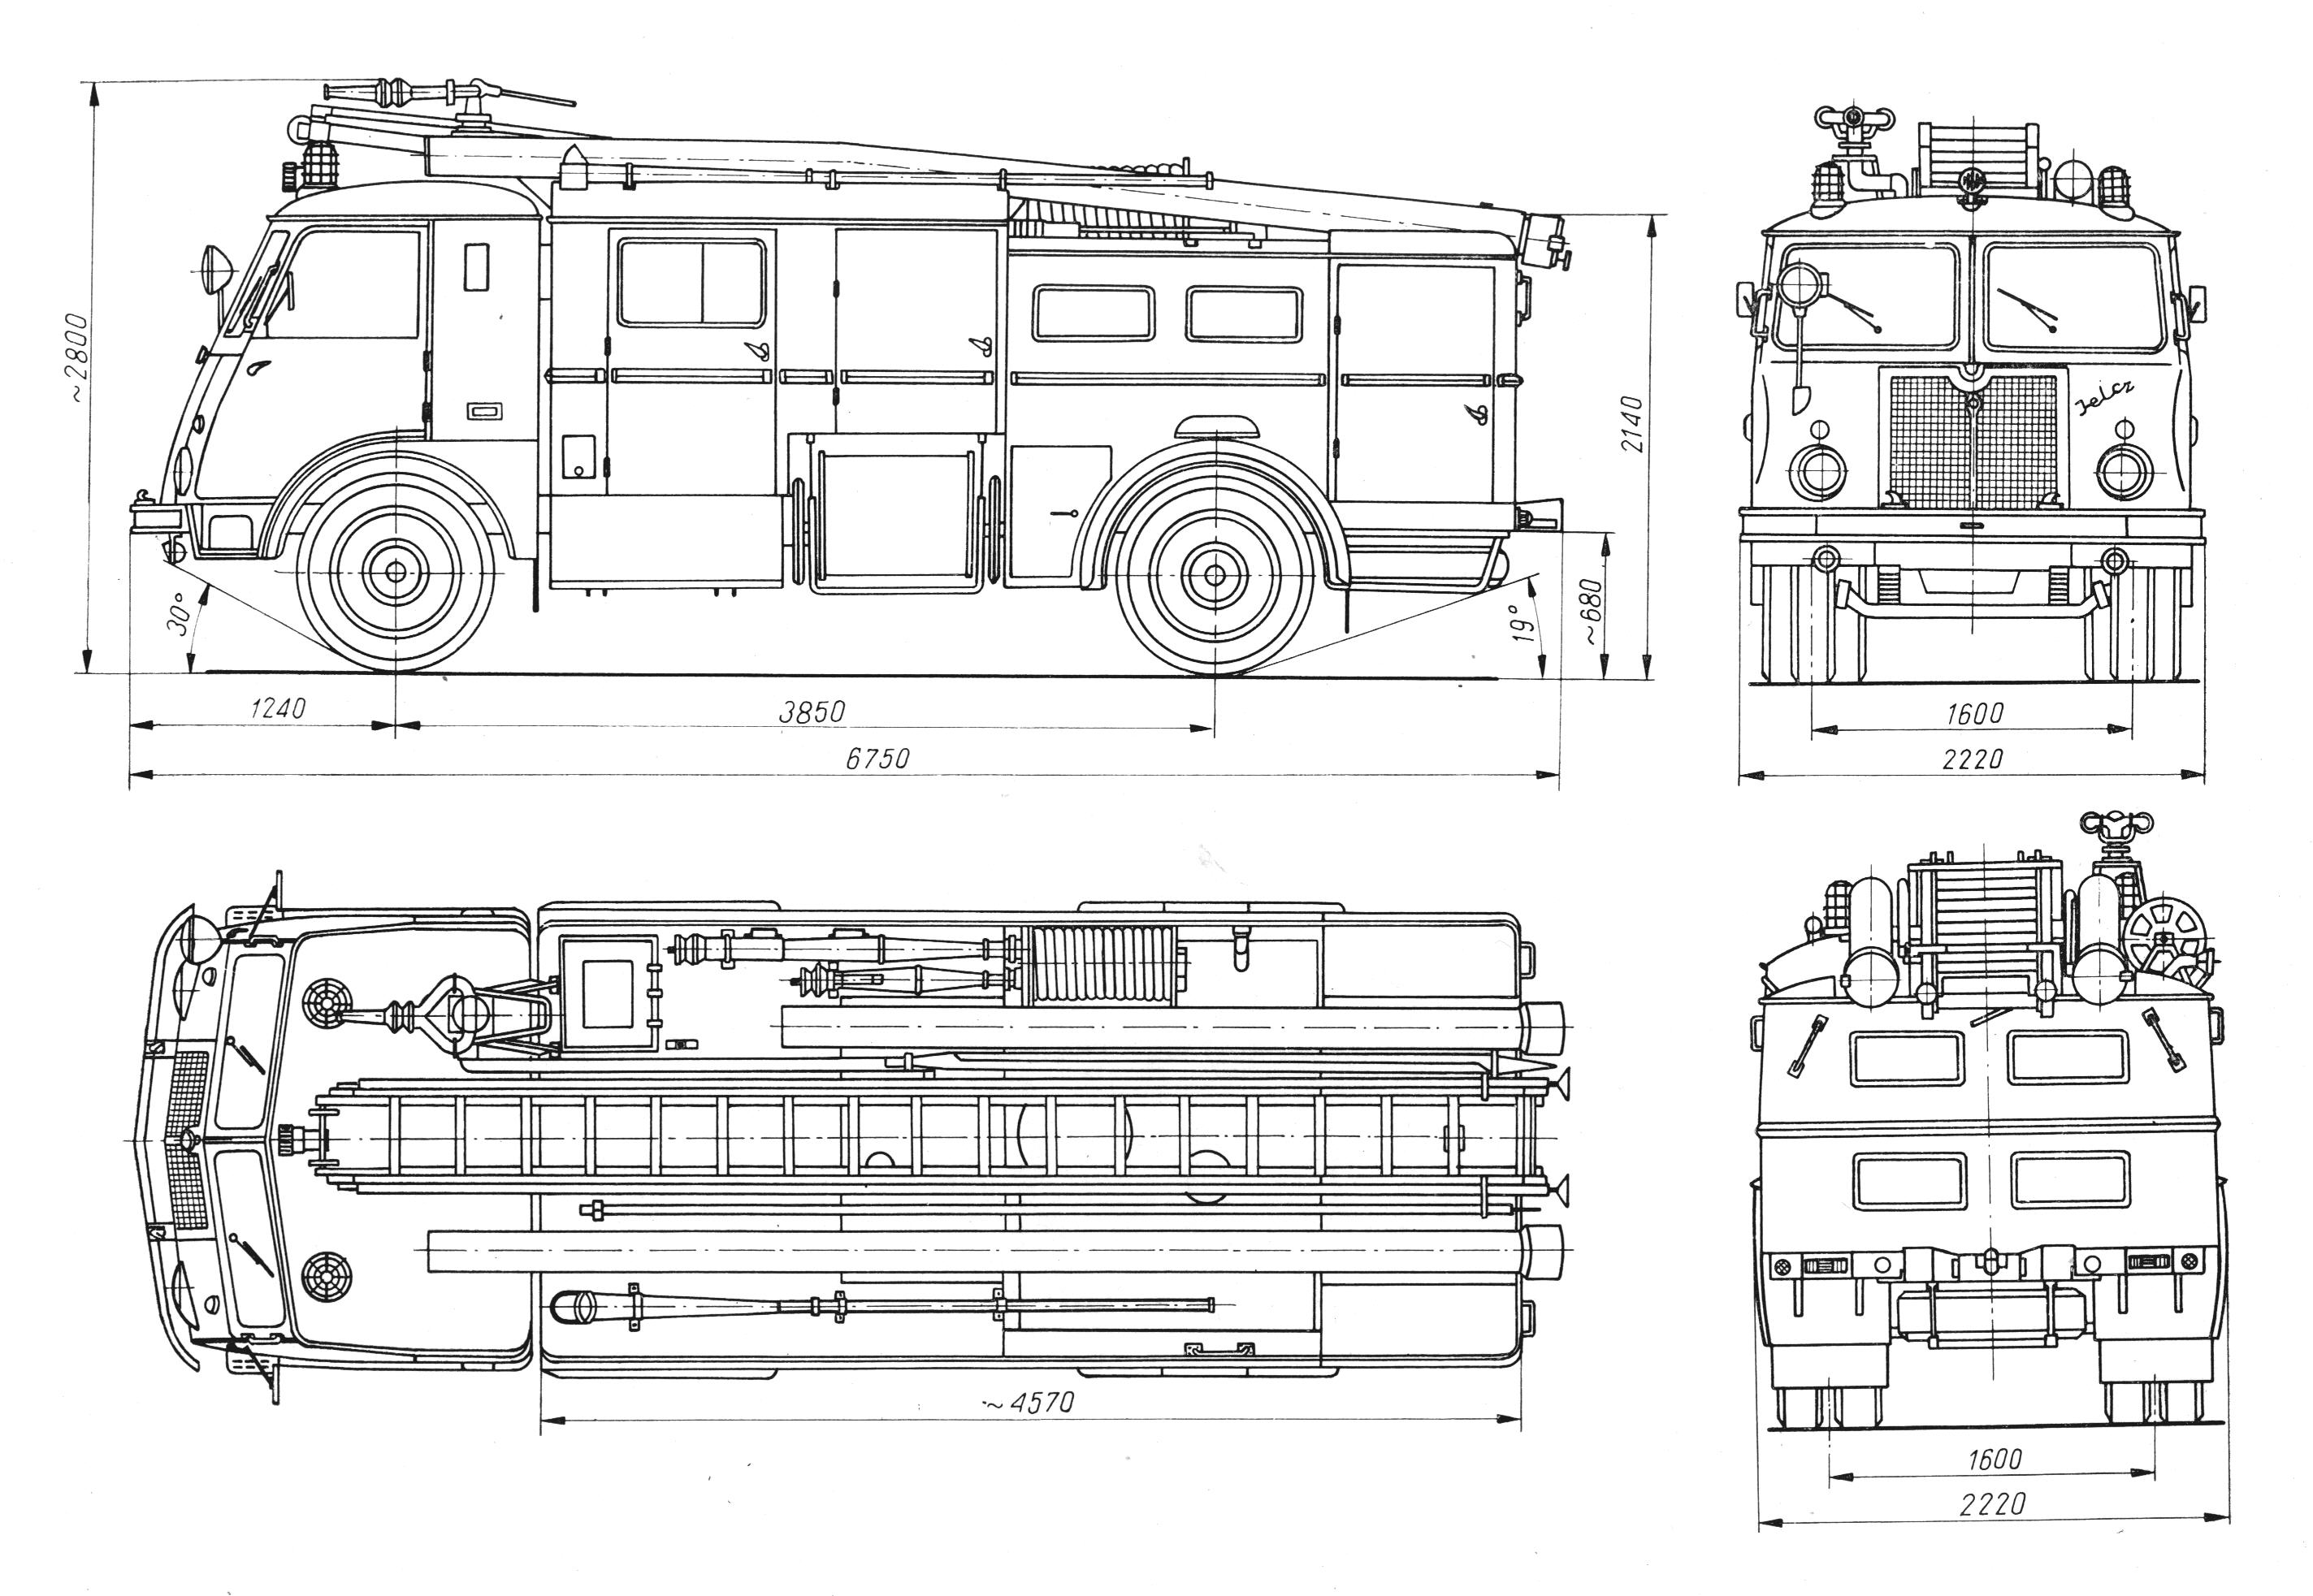 Fire Truck Diagram Wiring Schemes Mack Jelcz 003 Blueprint Download Free For 3d Modeling Electrical Schematic